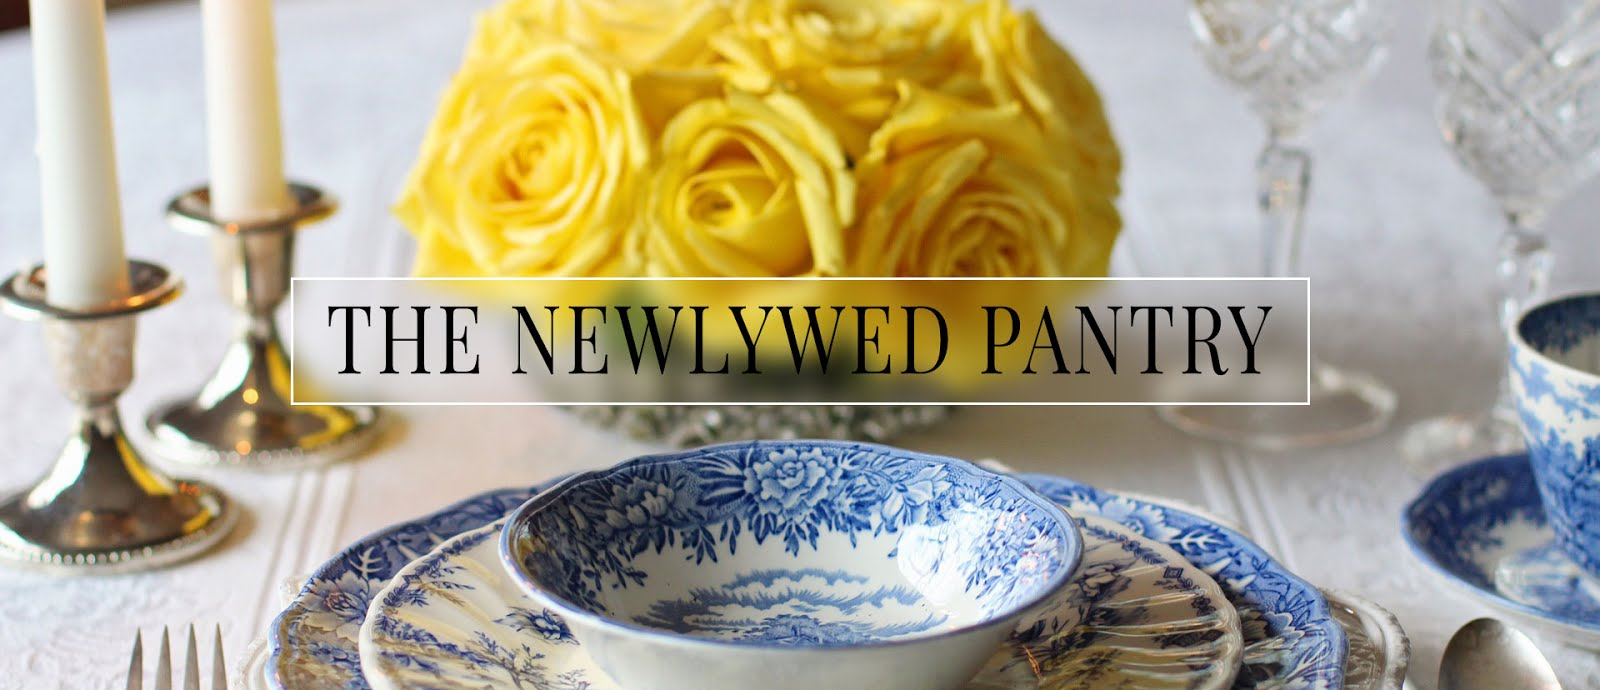 The Newlywed Pantry